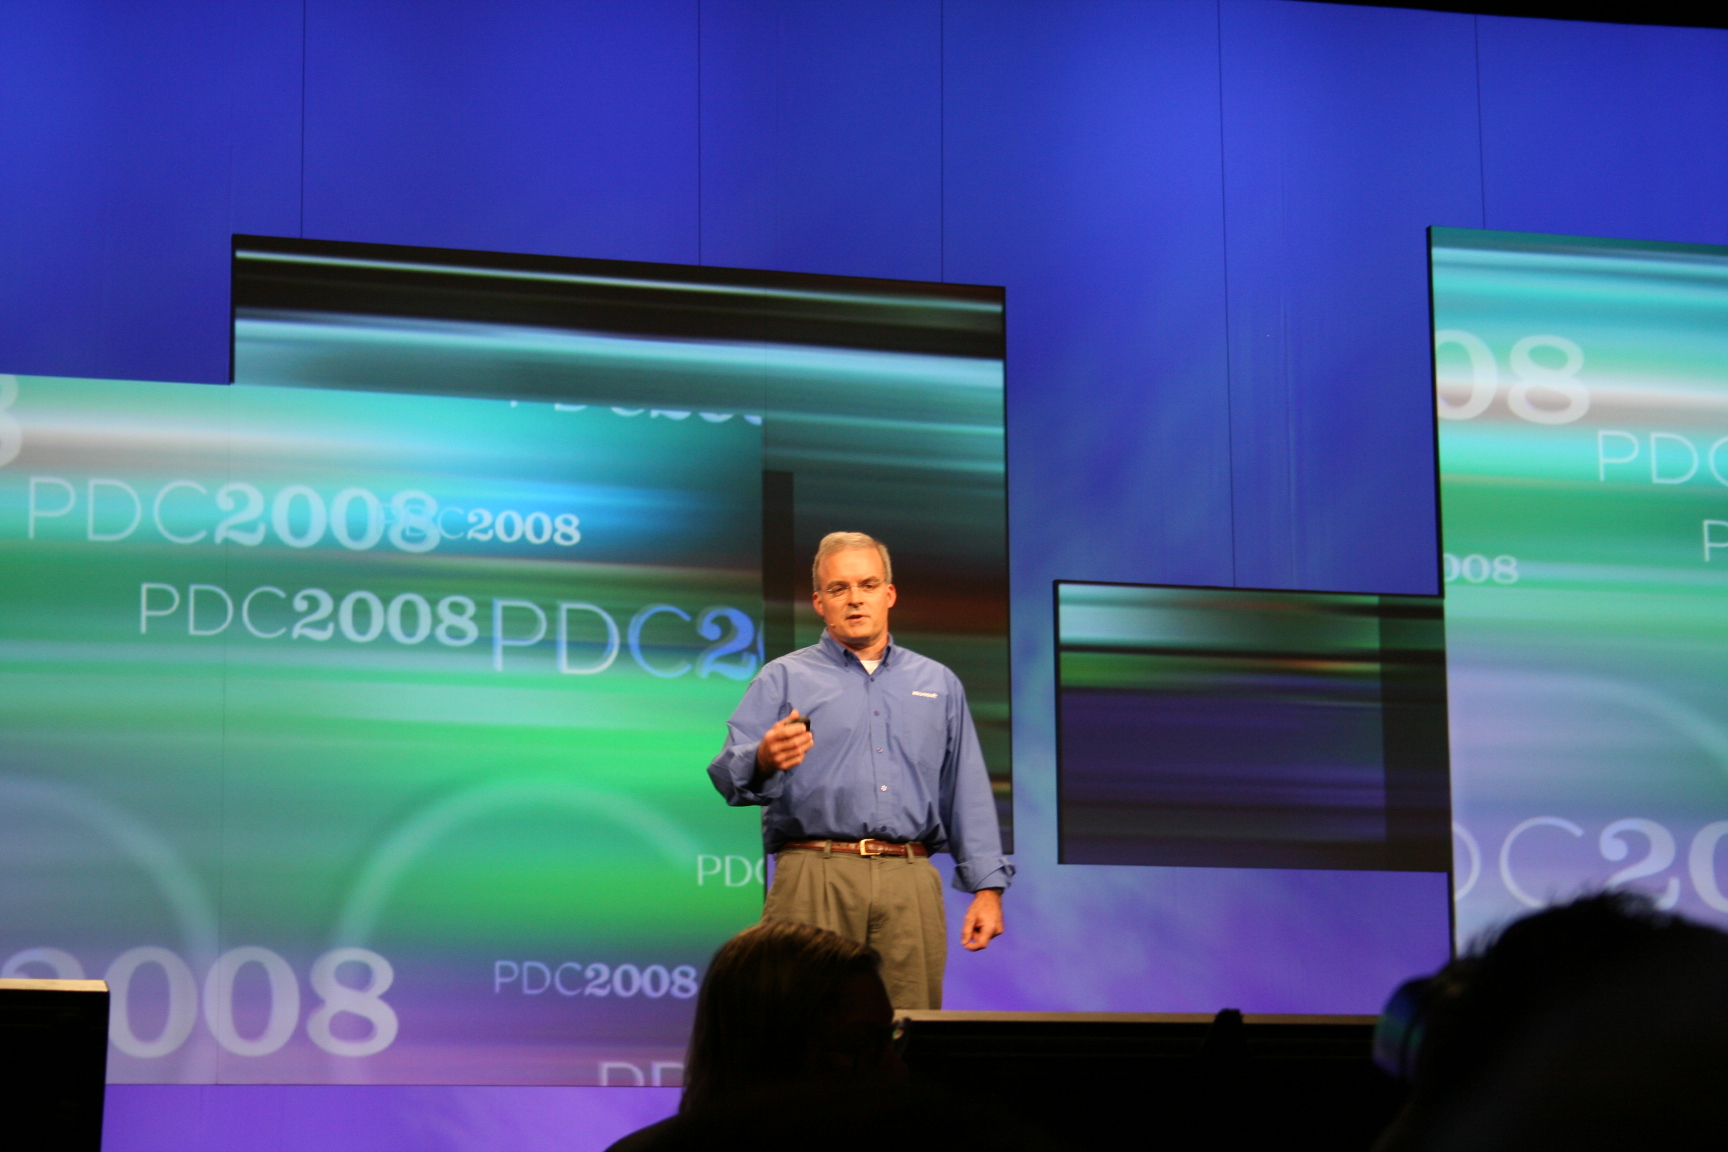 Microsoft's Dave Thompson tells attendees at the Microsoft Professional Developer Conference that all of the company's enterprise software will be offered as an online service over time.